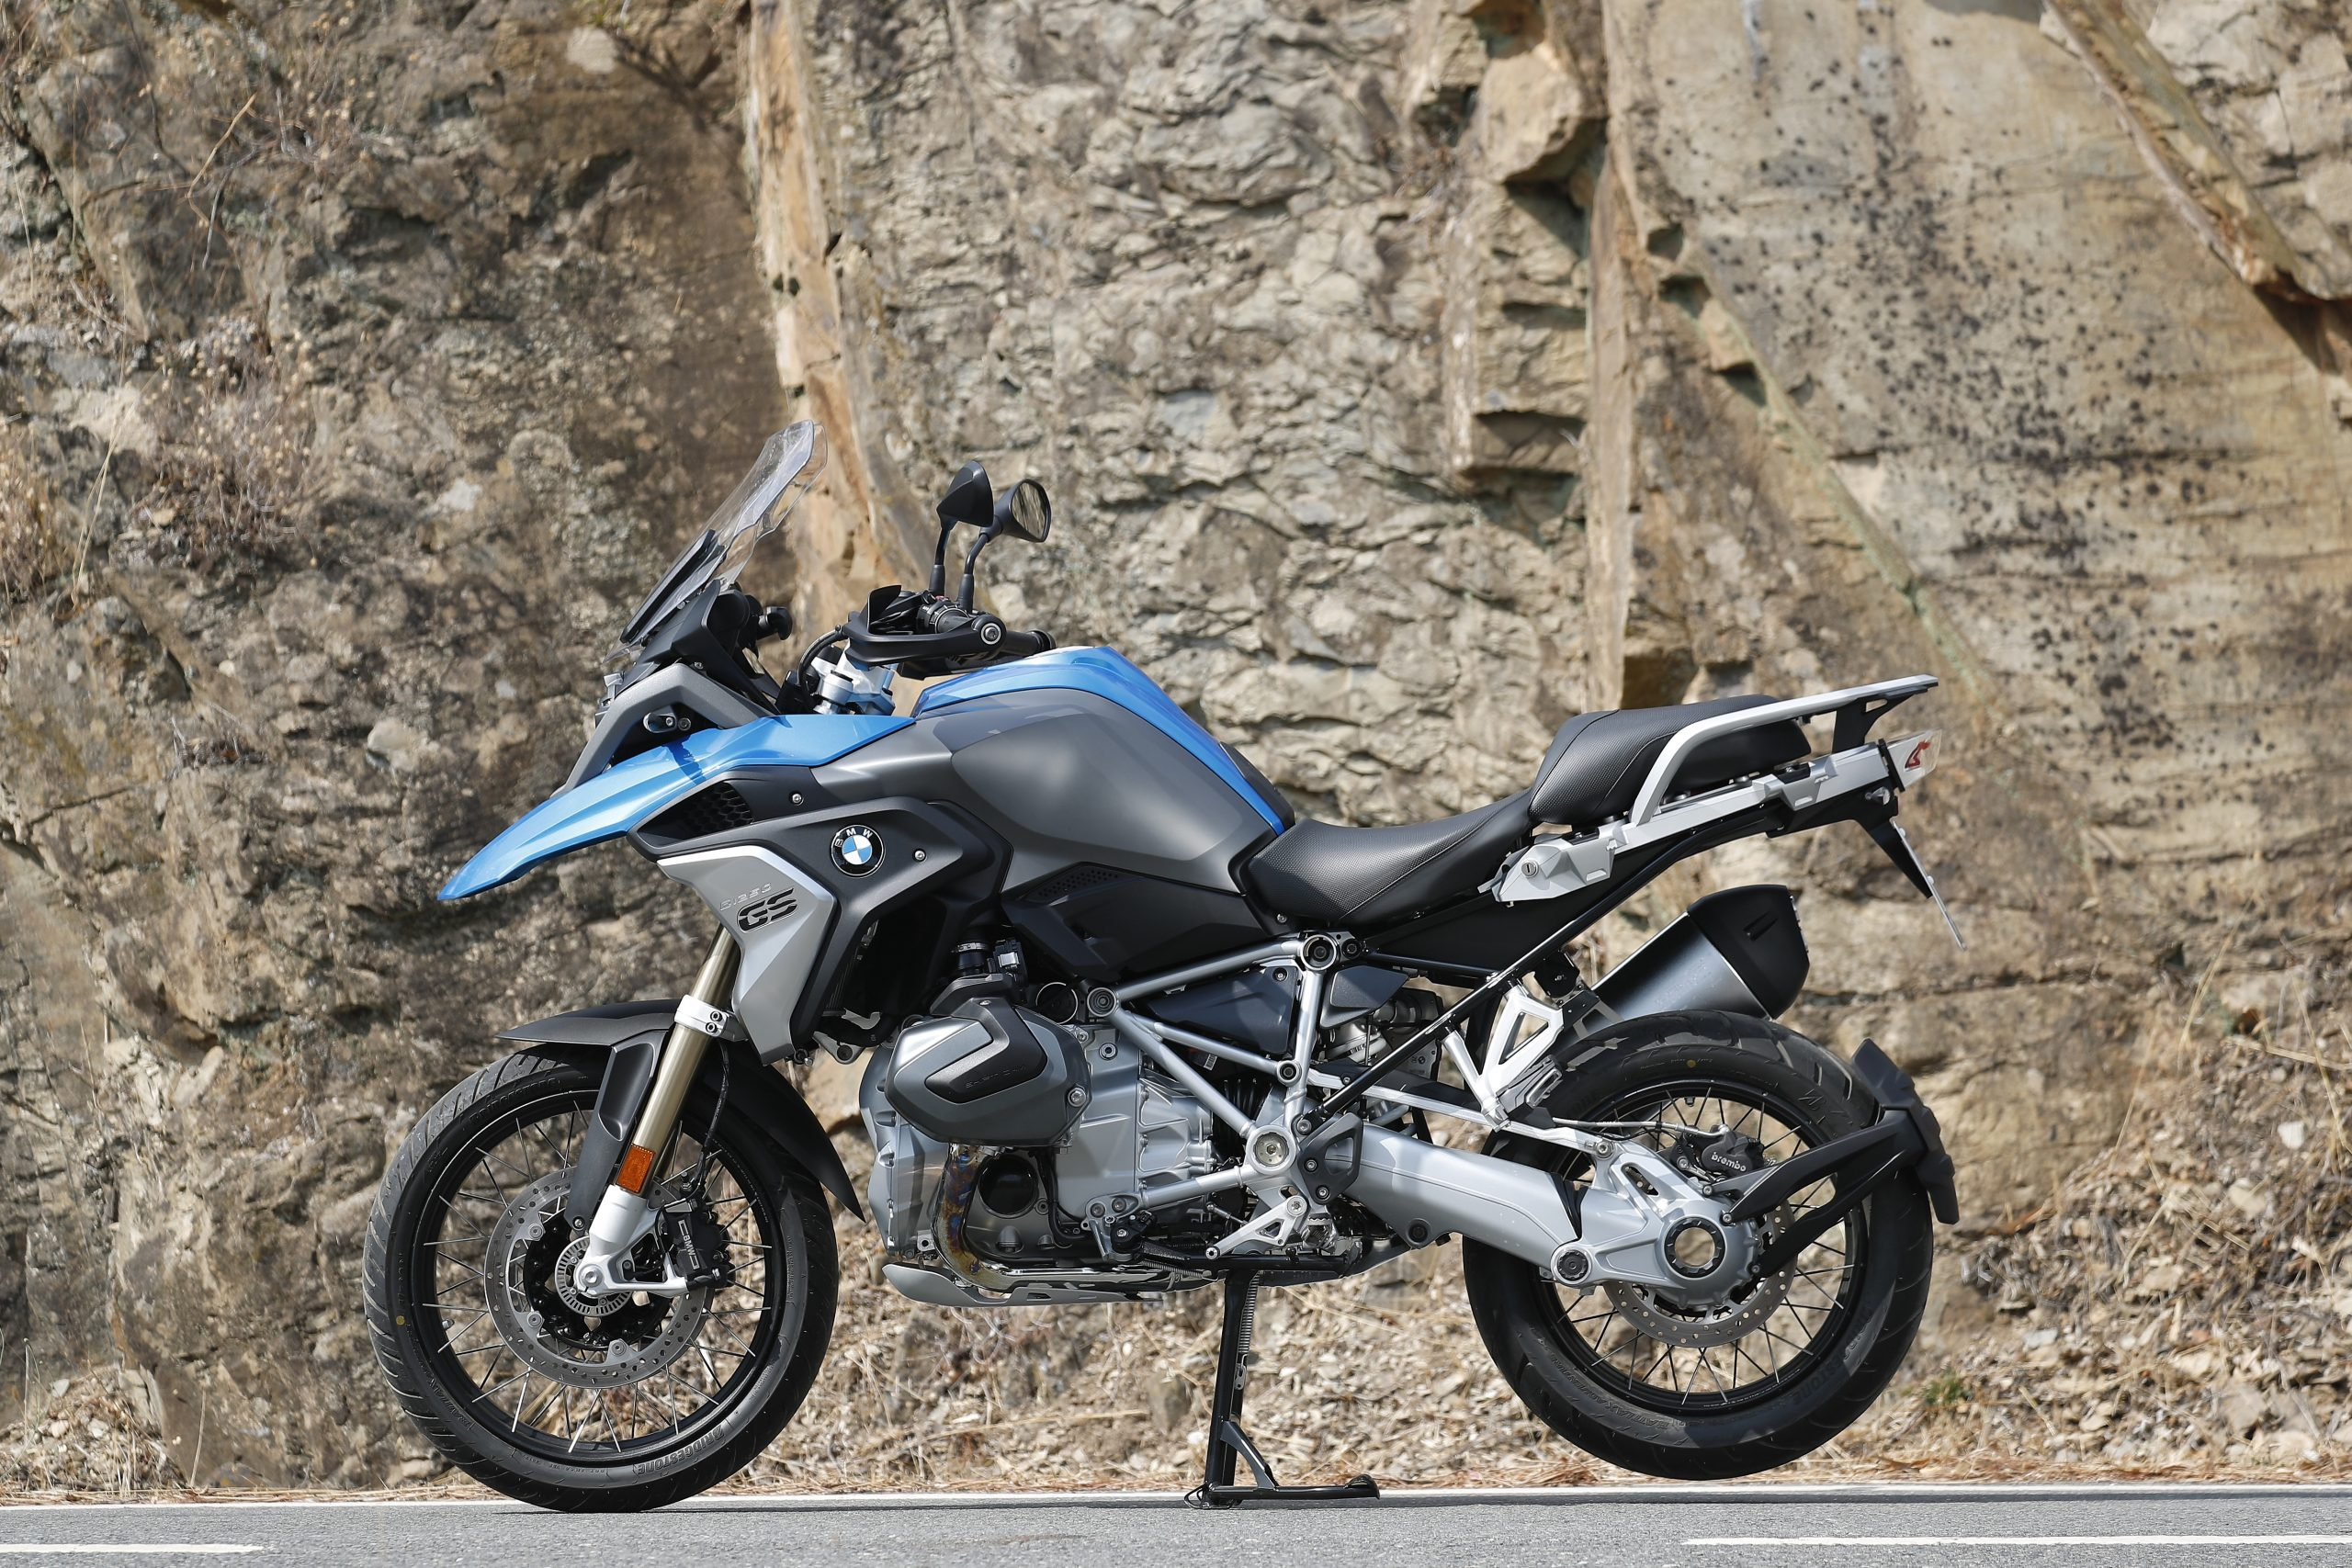 Motorbike types, Adventure, BMW R1250 GS